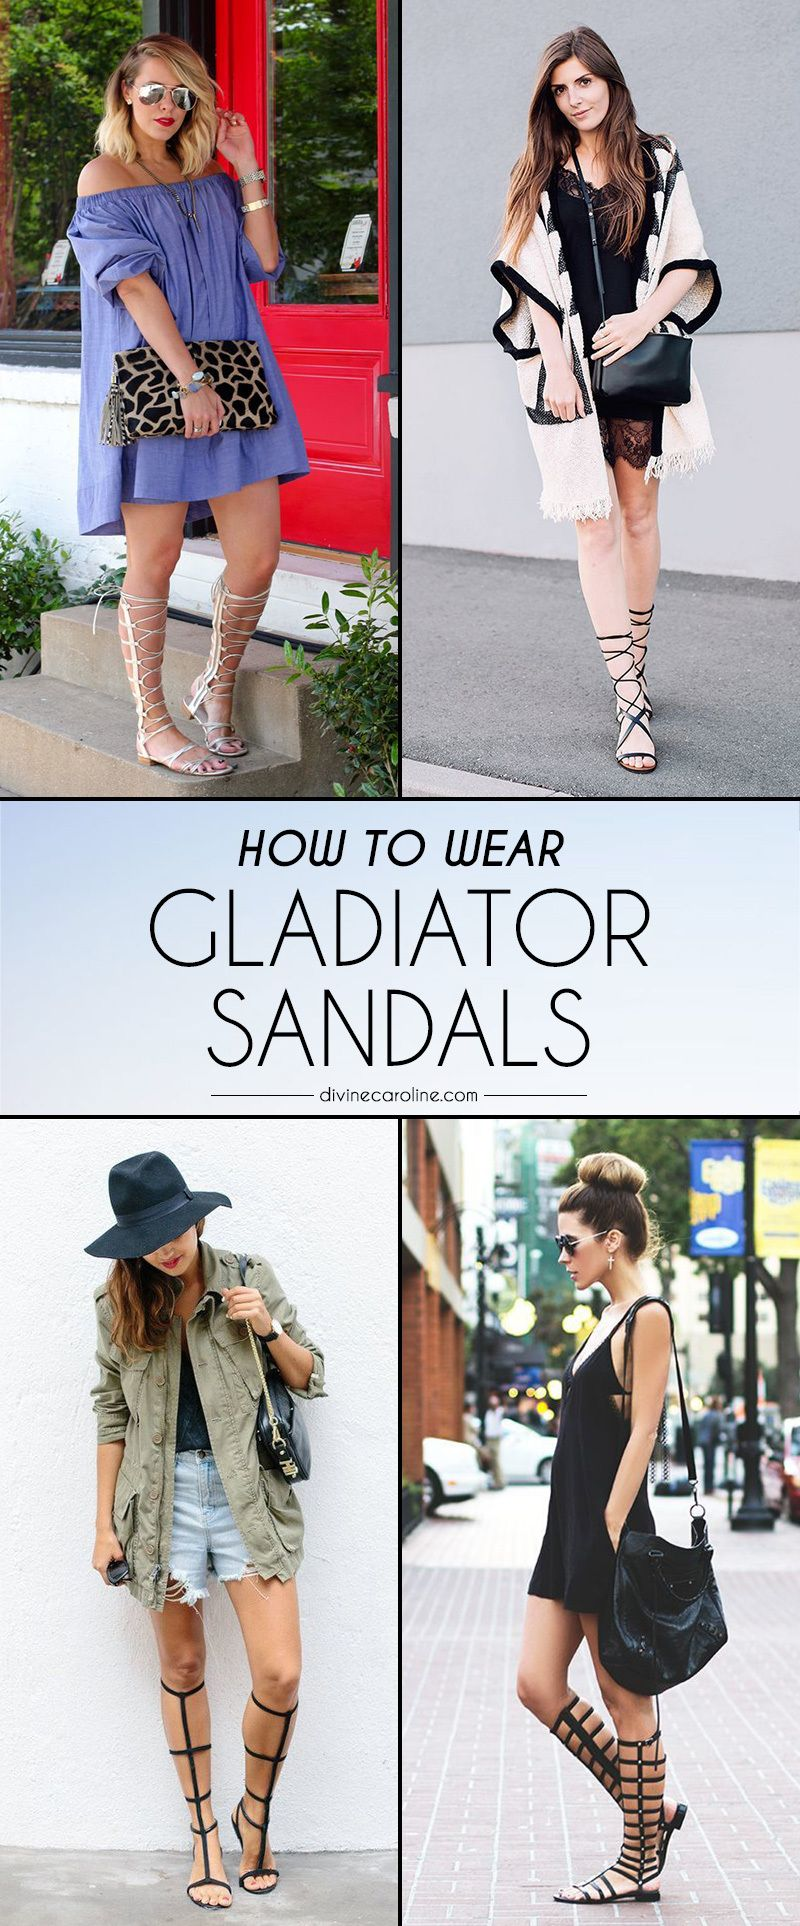 a8e2635a5a4 Gladiator sandals are one of this season s biggest trends. We found 16  trendy bloggers to show you how to rock this look this summer!  Gladiators   Style